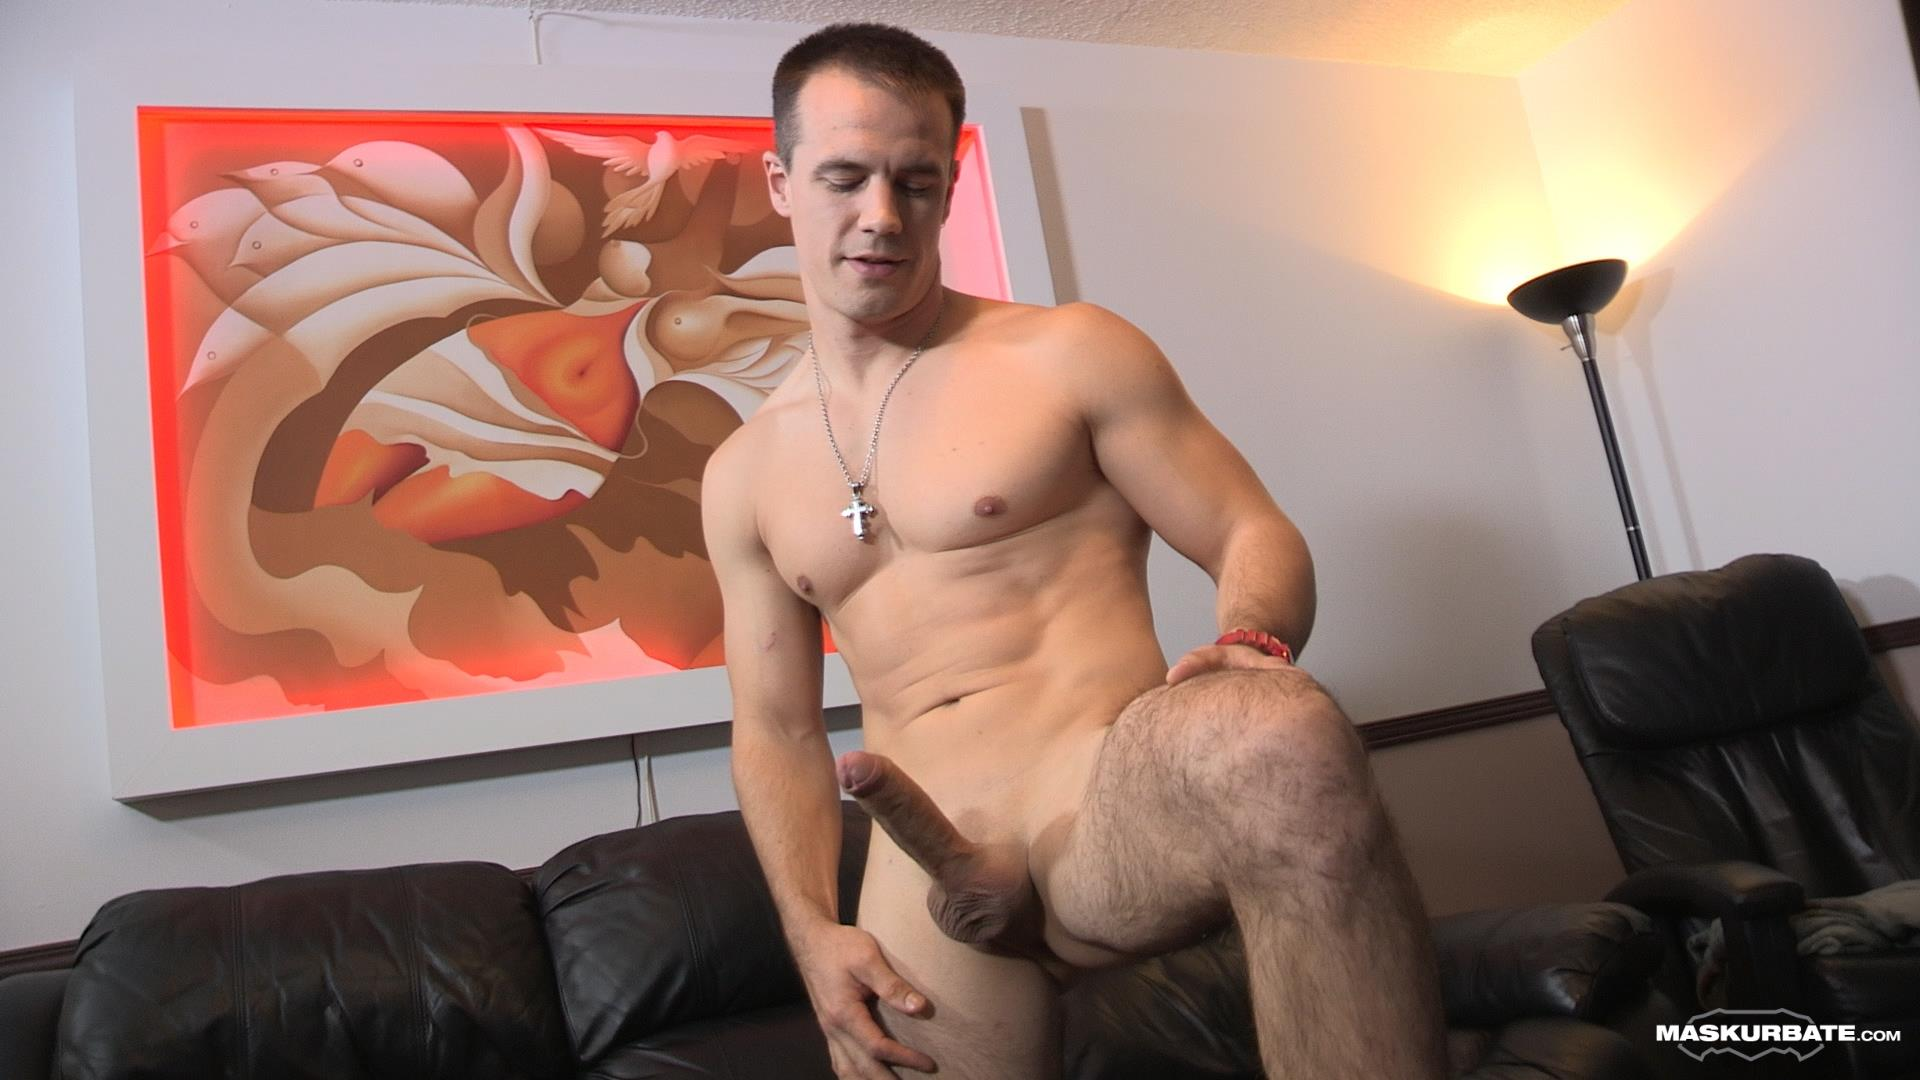 Maskurbate-Ricky-Straight-Guy-Masturbate-Big-Uncut-Cock-Amateur-Gay-Porn-07 Ricky Jerks His Huge Uncut Cock Until Jizz Shoots